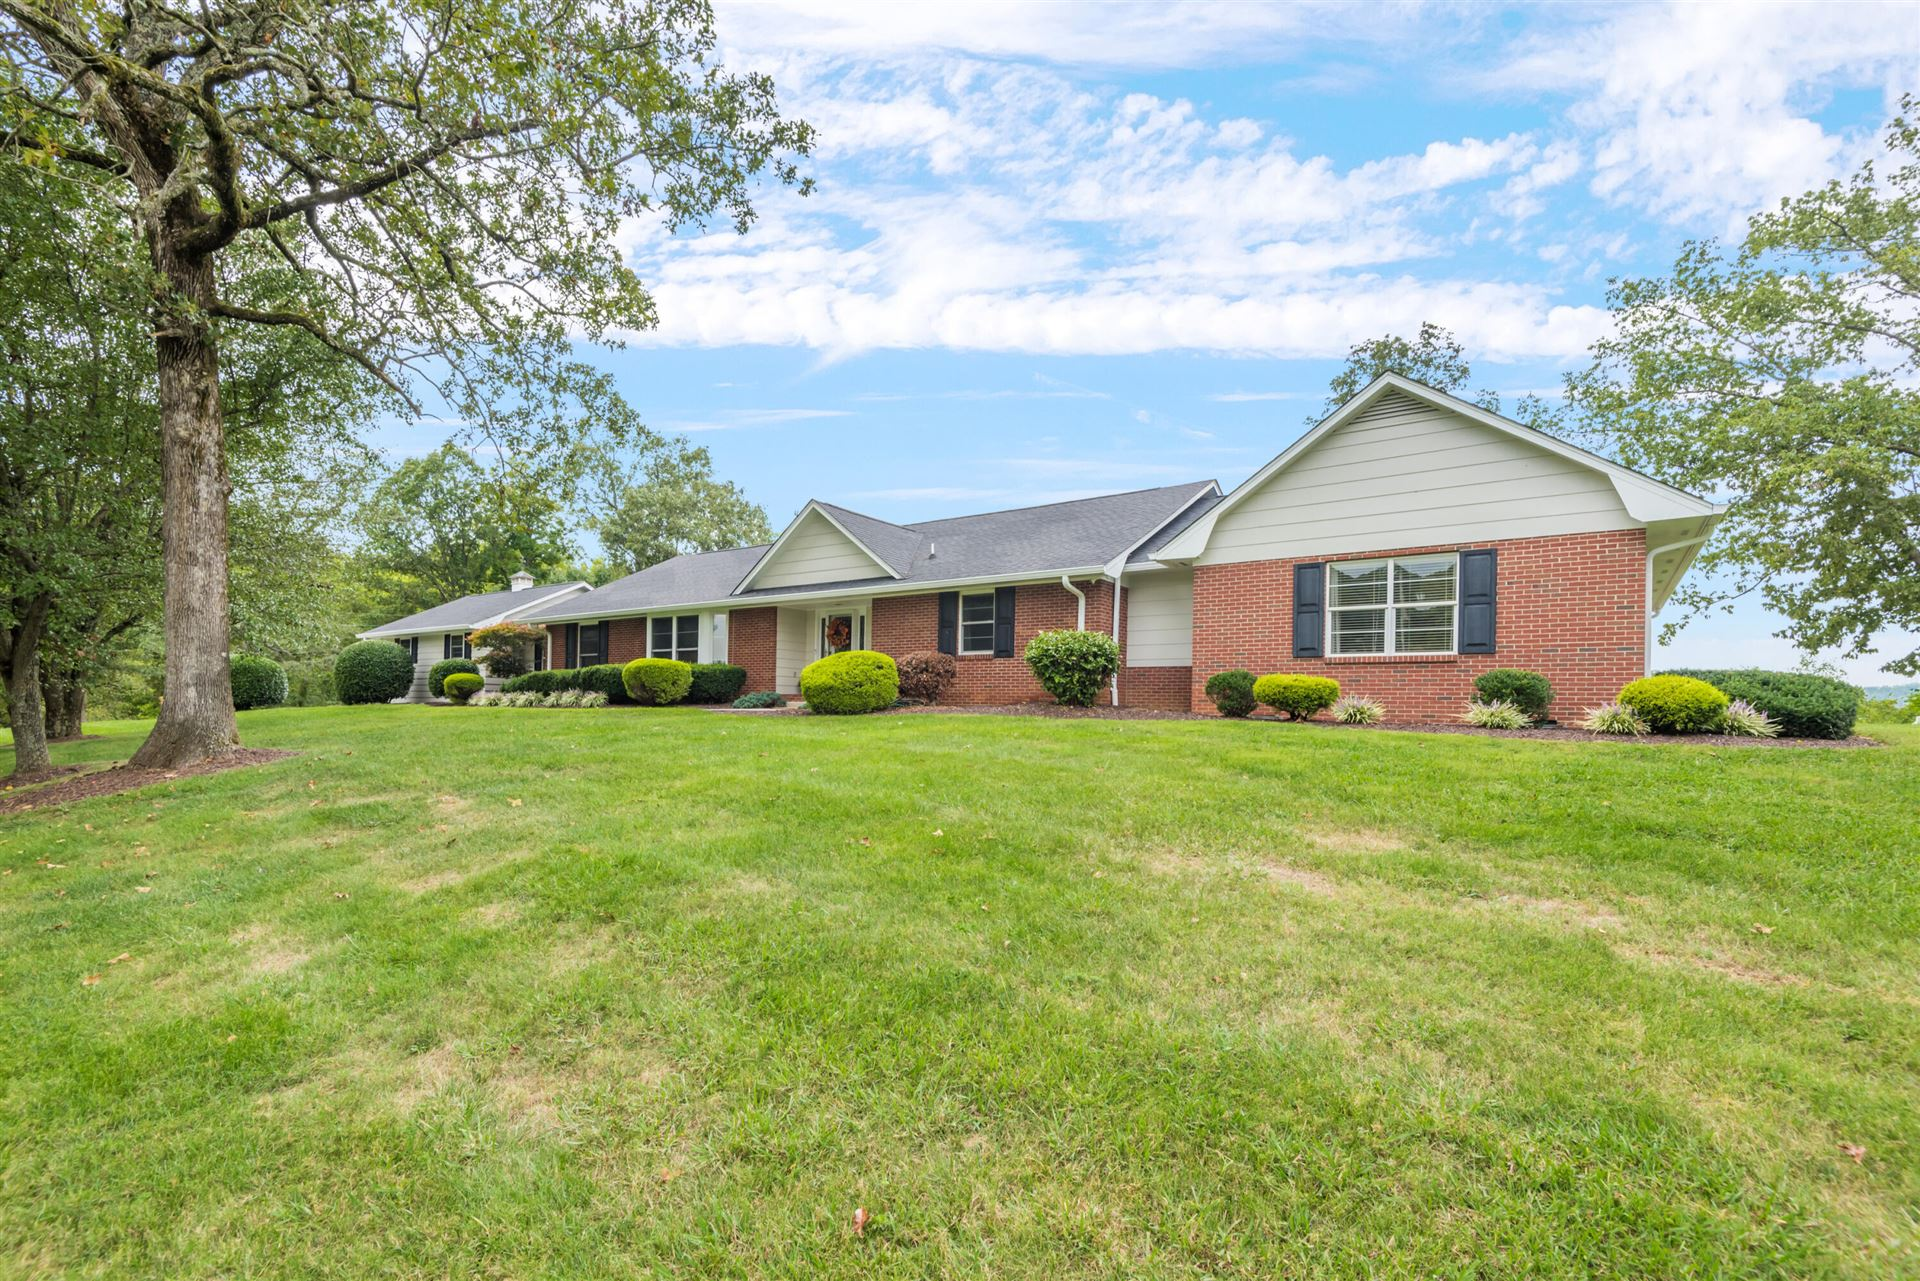 Photo of 7503 Asheville Hwy, Knoxville, TN 37924 (MLS # 1167778)